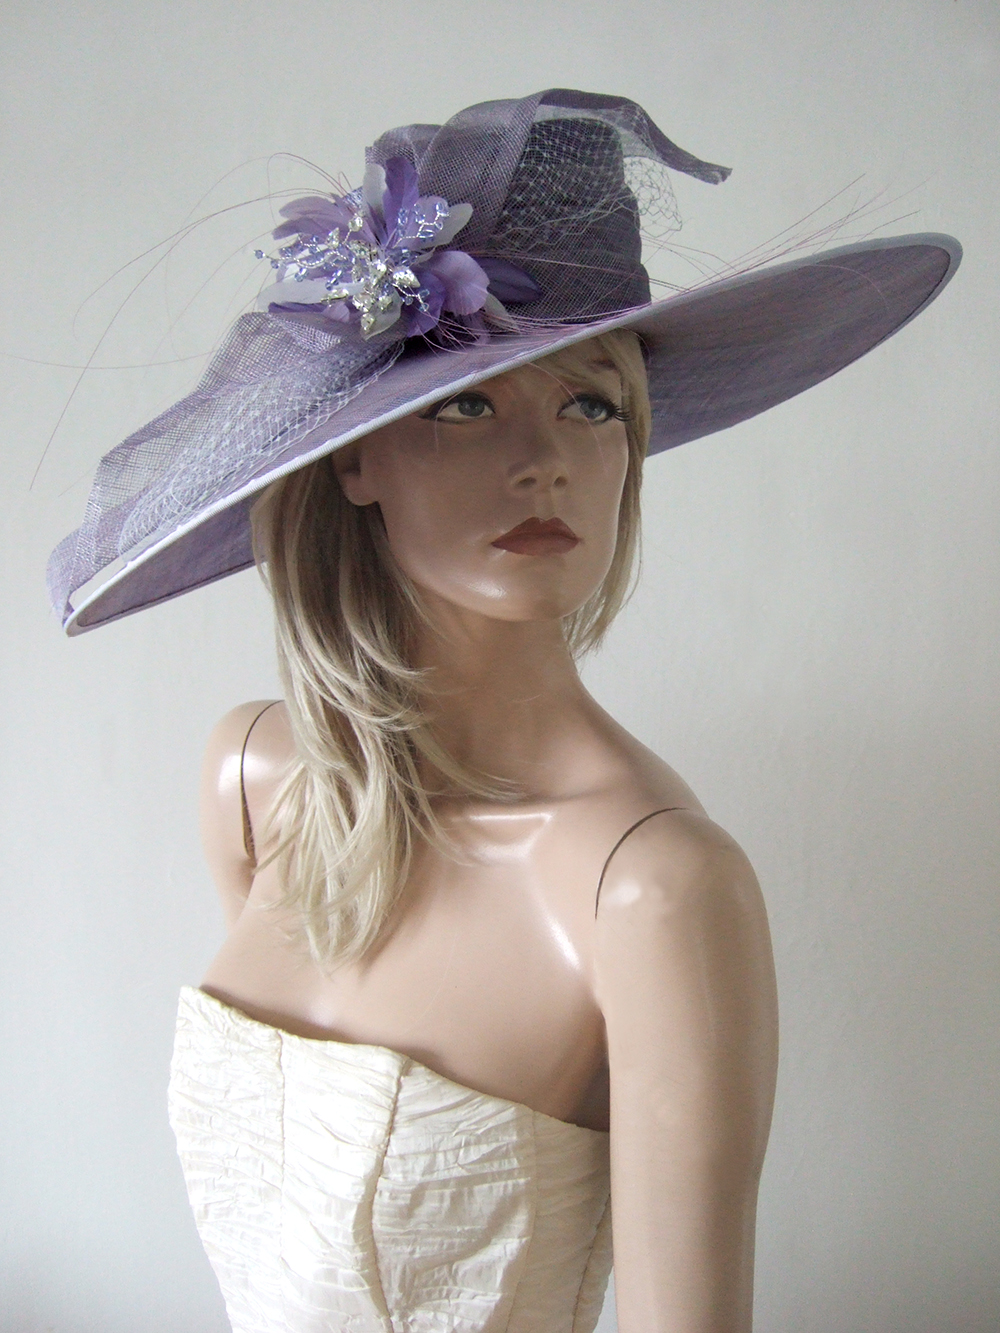 Lavender Formal Wedding Guest Hats 2020. Big Hats for Royal Ascot 2020. Lilac Royal Ascot Hats 2020, Formal Hat Hire 2020. Hat Hire Berkshire. Wedding guest hats 2020. Hats for Hire 2020. Ladies Wedding Hats 2020. Big Mother of the Bride Hats 2020. Royal Ascot Hat Rental 2020. Wedding Hats for Hire UK 2020. Hire Hats for Epsom Races 2020.